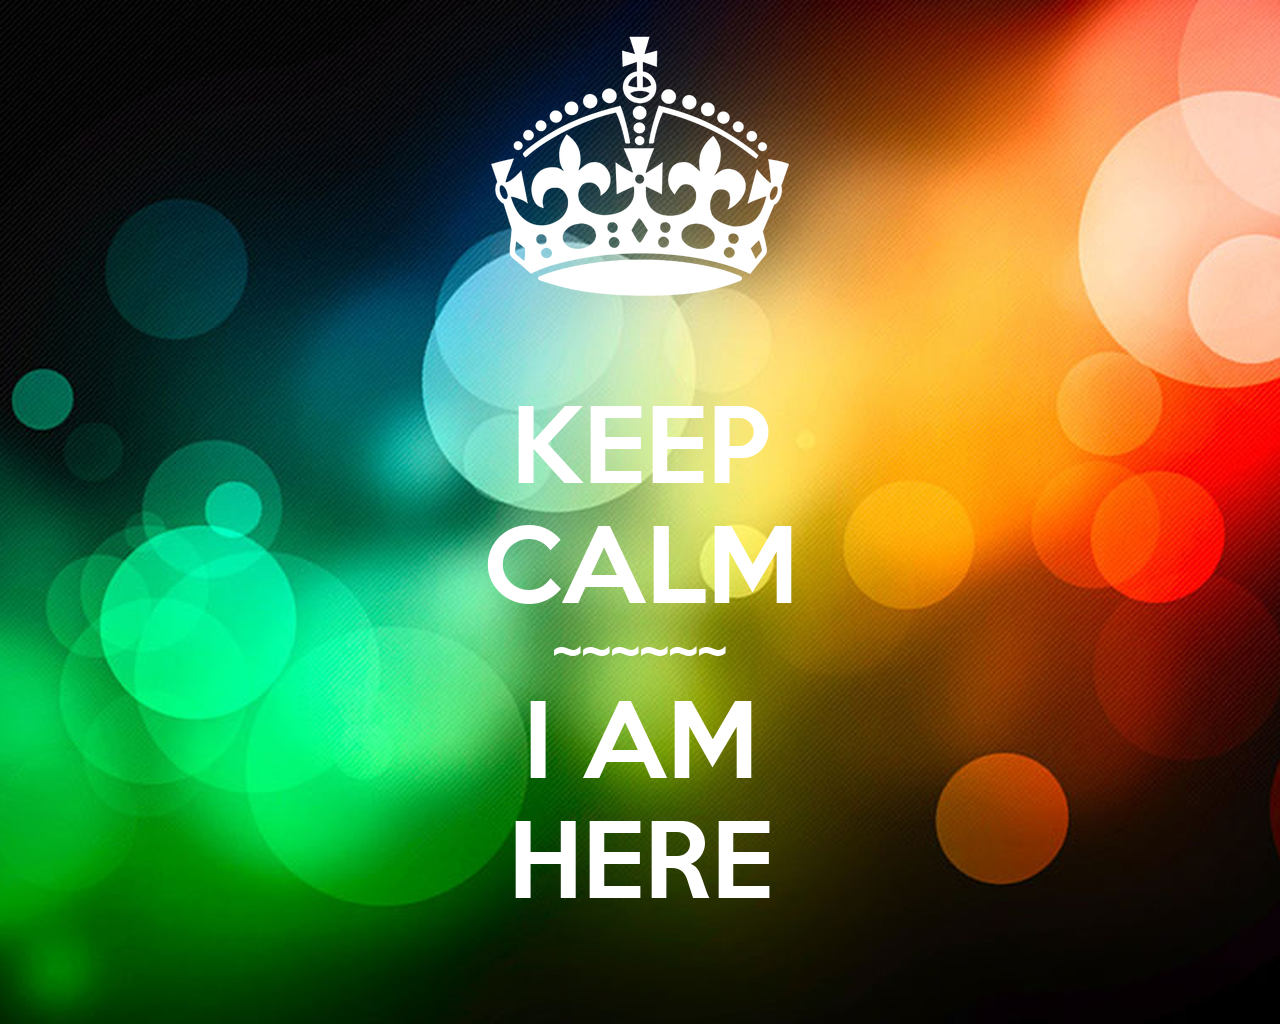 KEEP CALM ~~~~~~ I AM HERE Poster